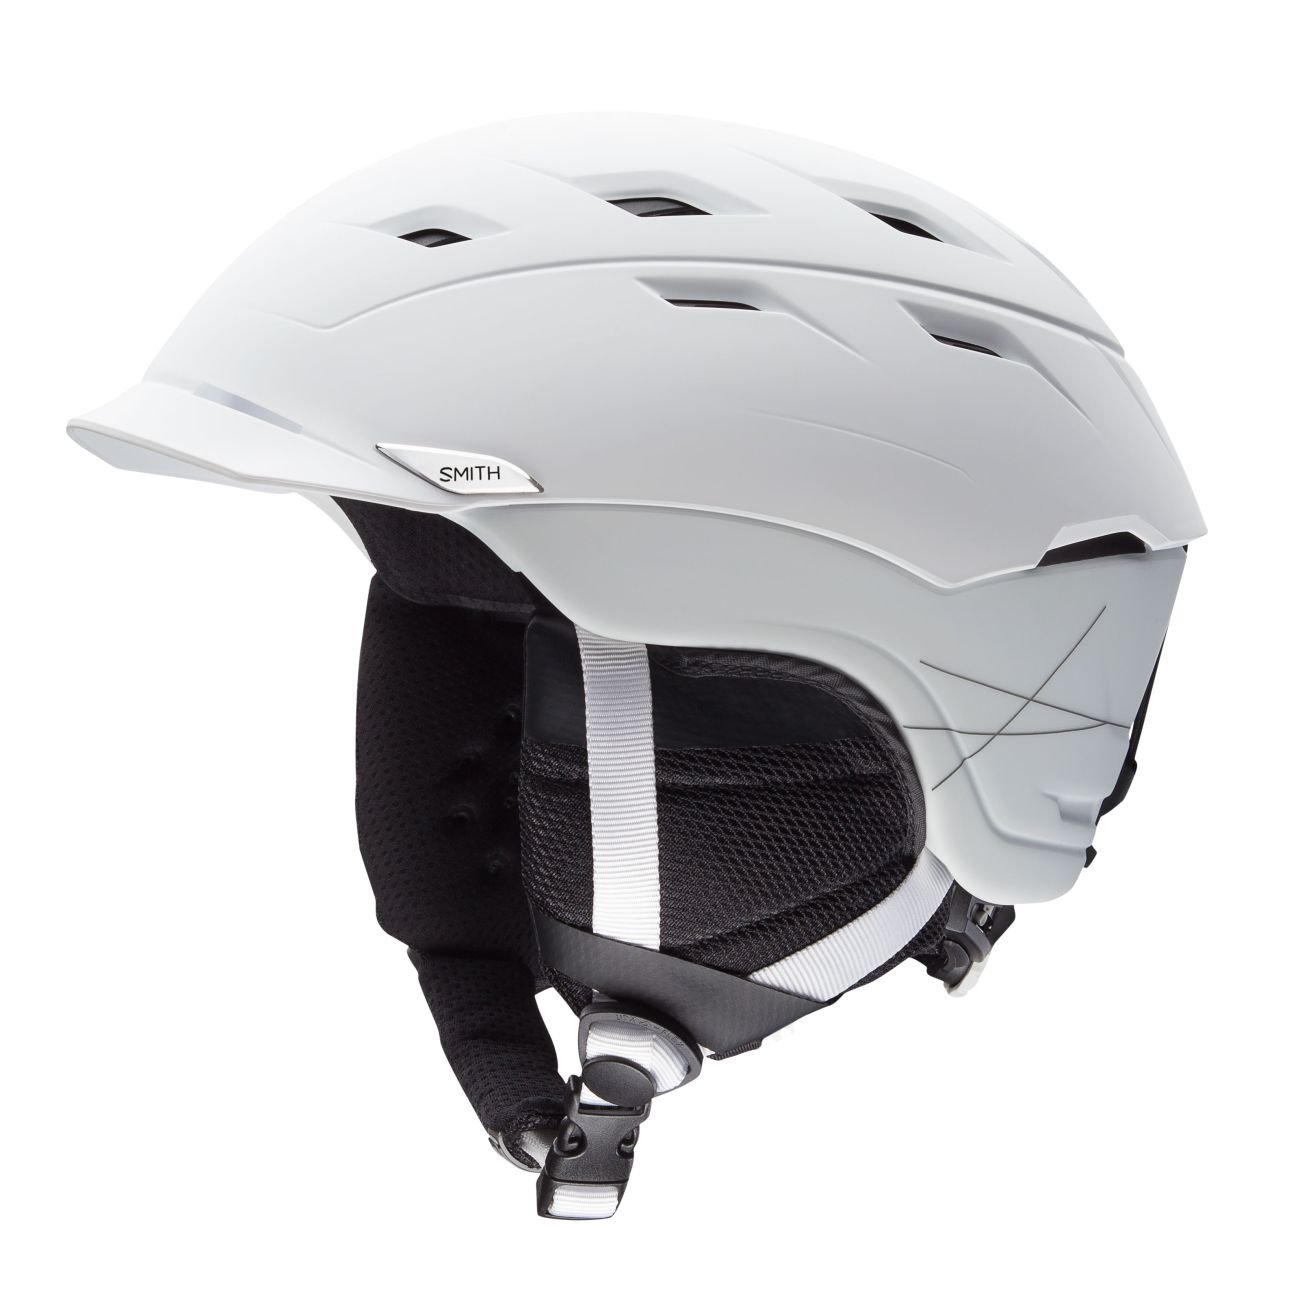 Smith Optics Variance Adult Mips Ski Snowmobile Helmet - Matte White / Large by Smith Optics